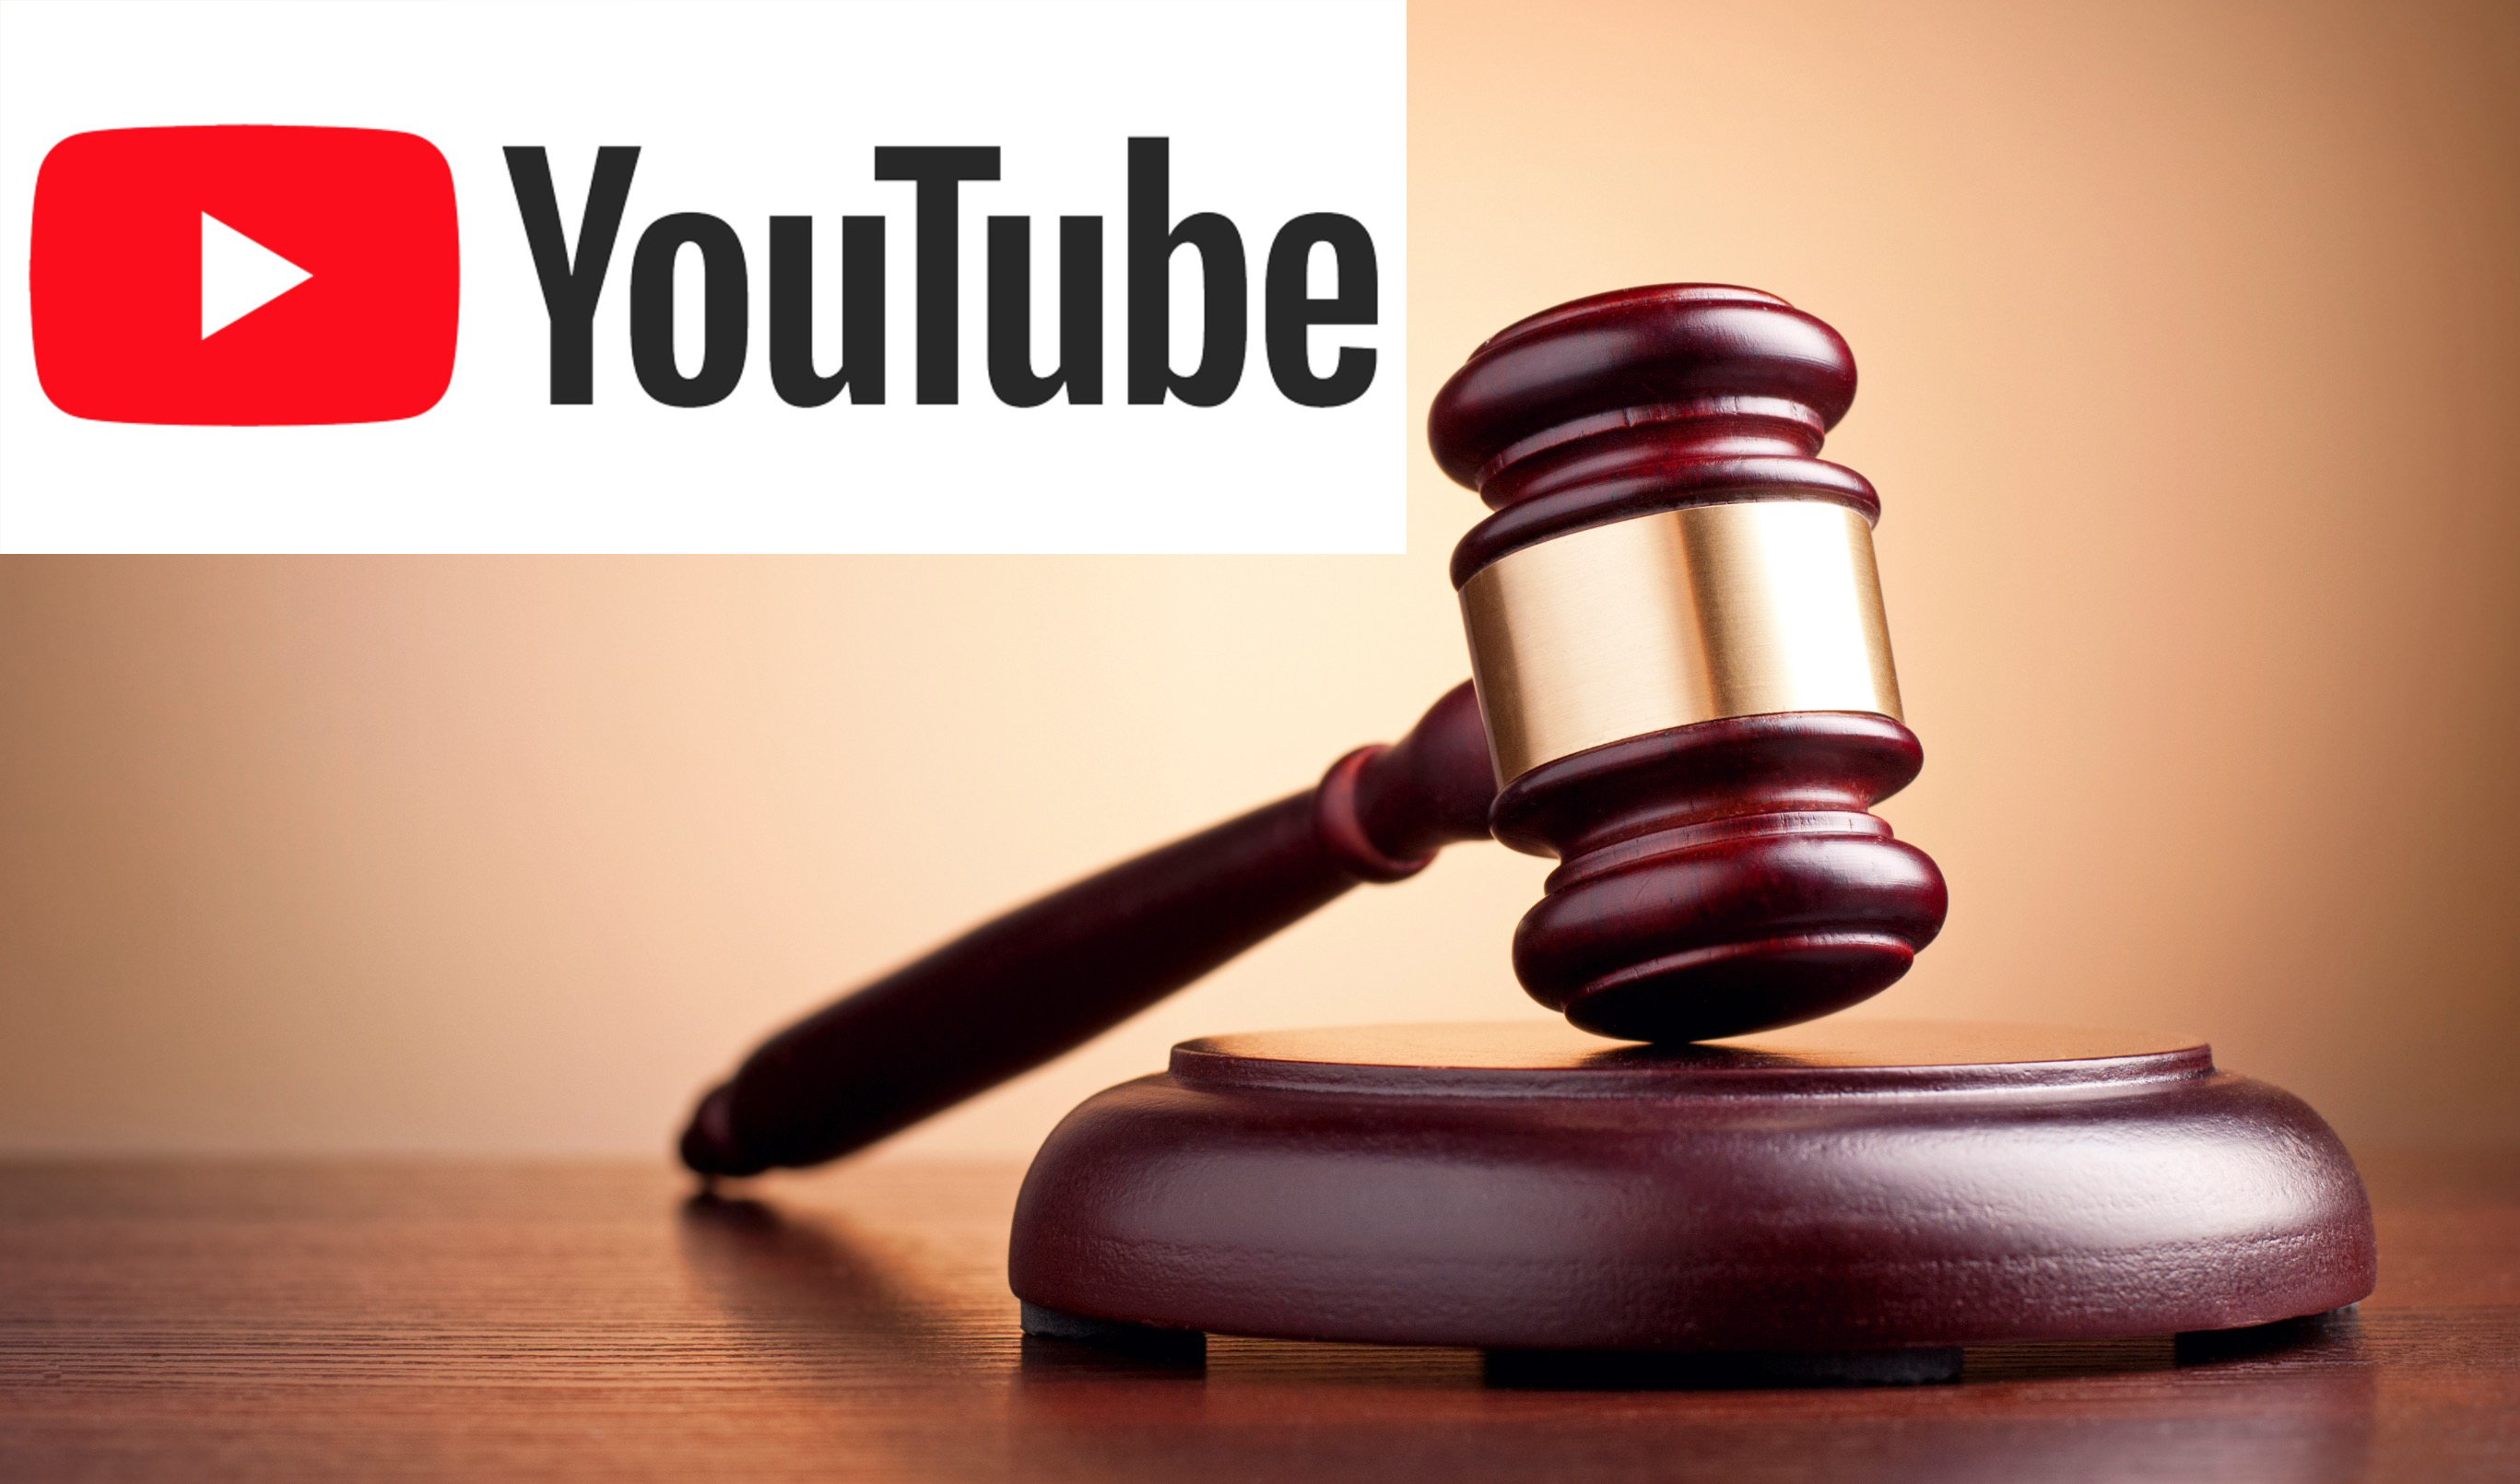 Scaricare video da YouTube è legale